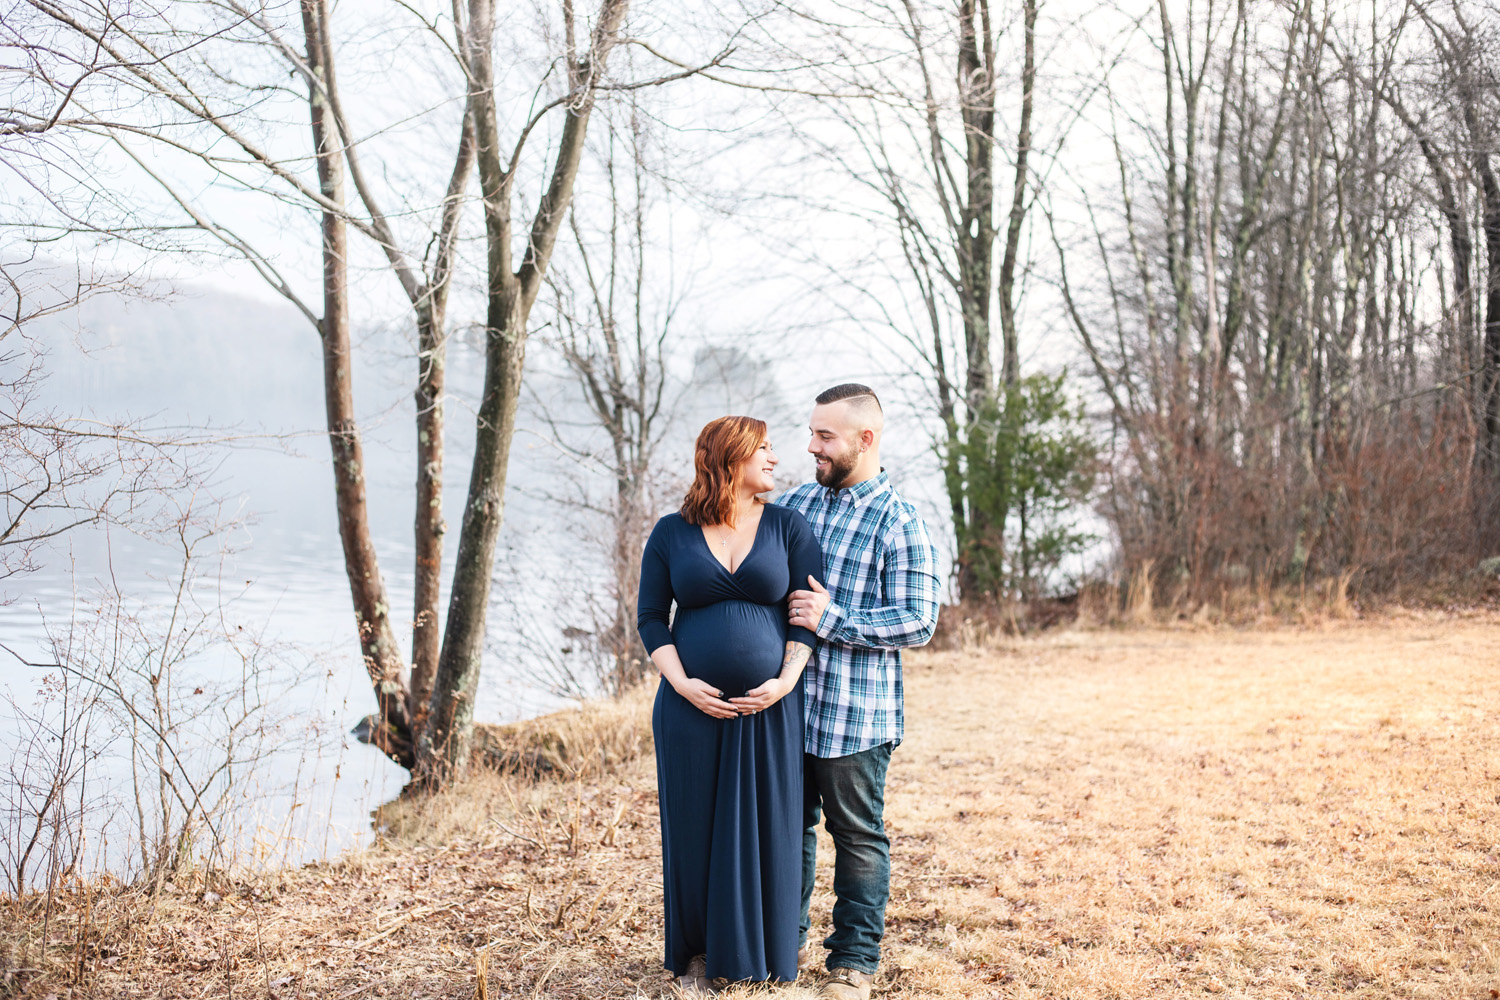 Maternity portraits at Quabbin Reservoir by Monika Normand Photography